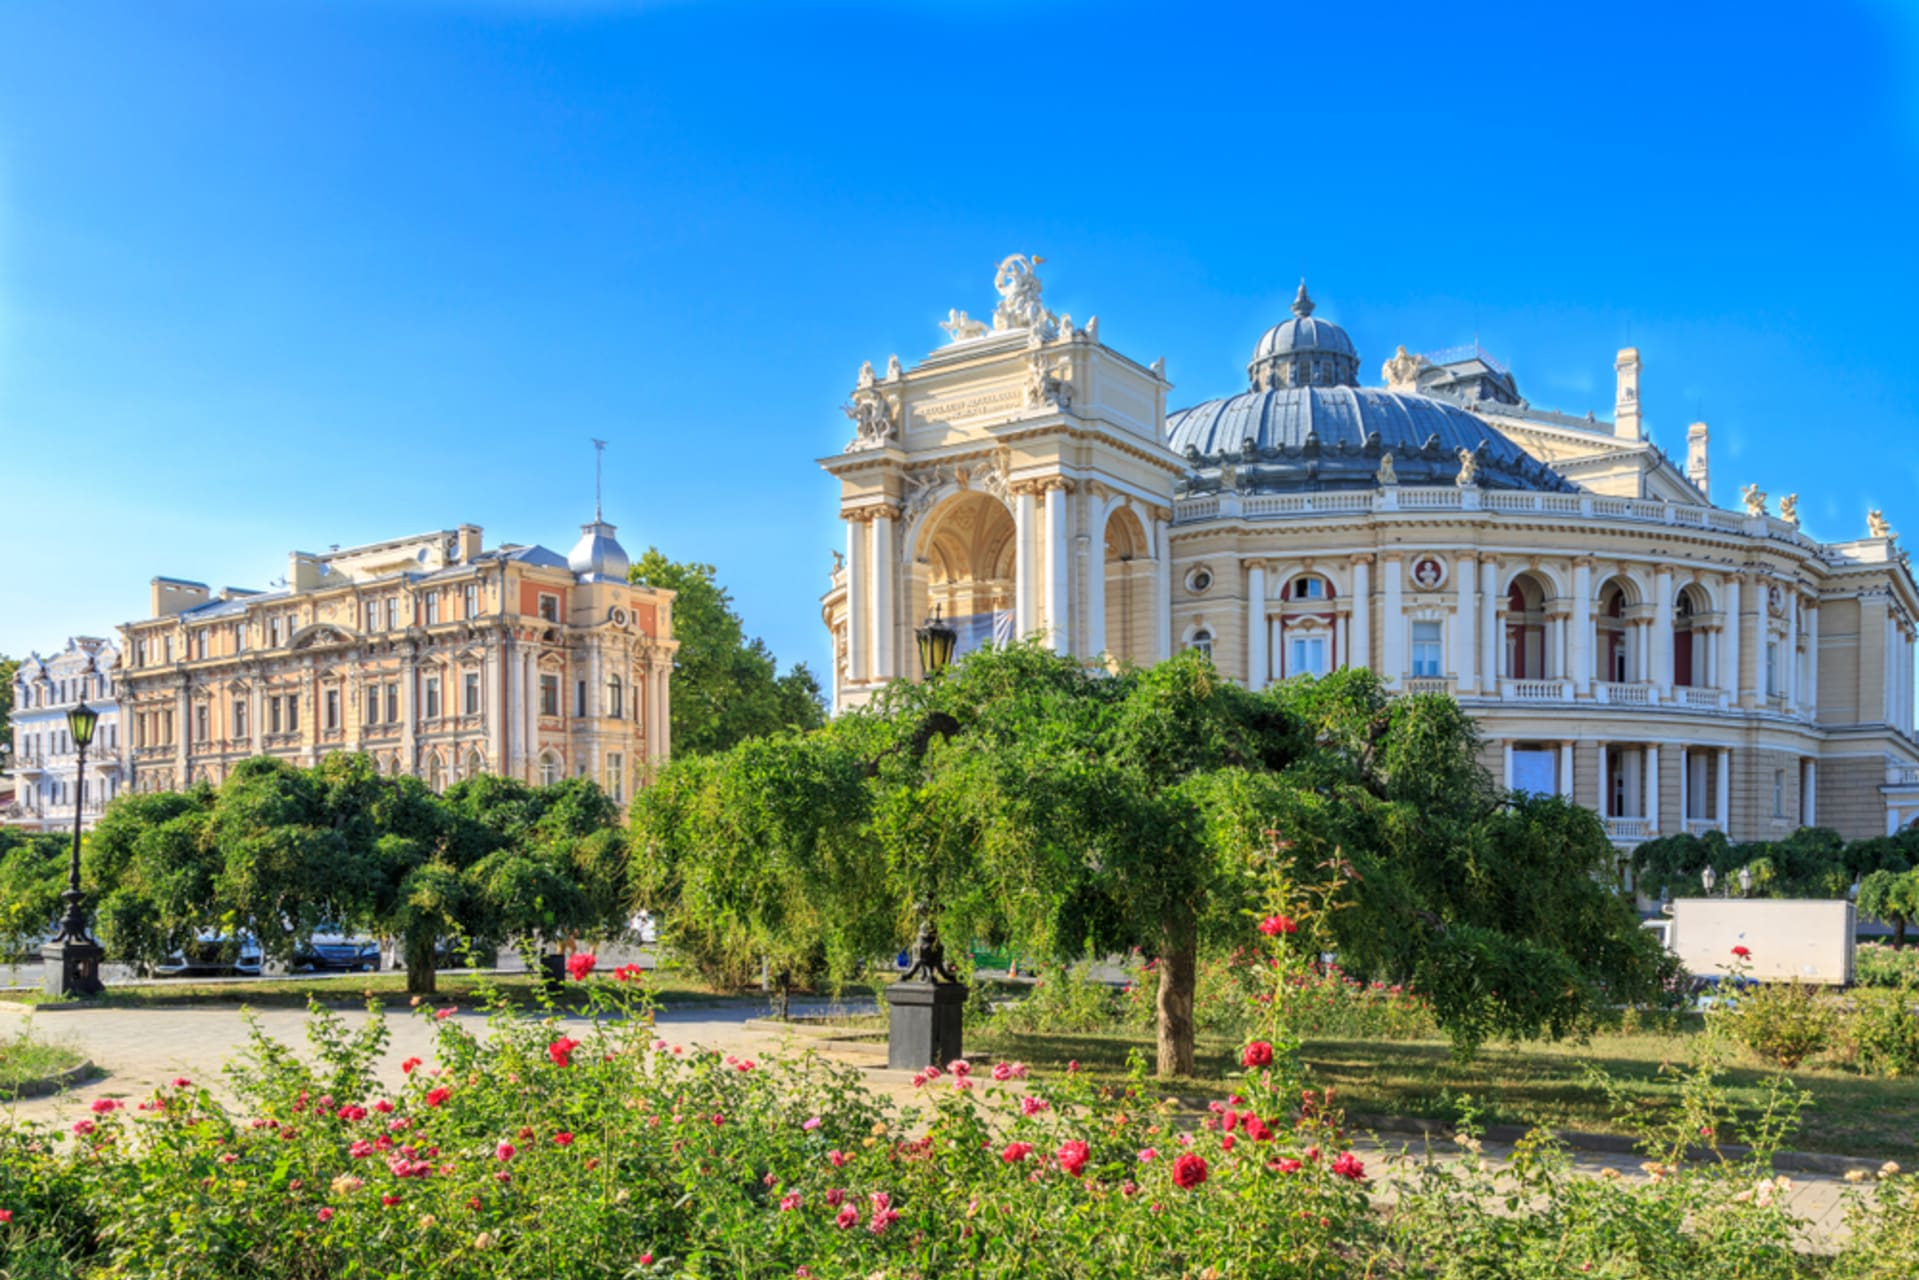 Odessa - Odessa - the Pearl of the Black Sea: City Walk with a Quiz (Part 2)